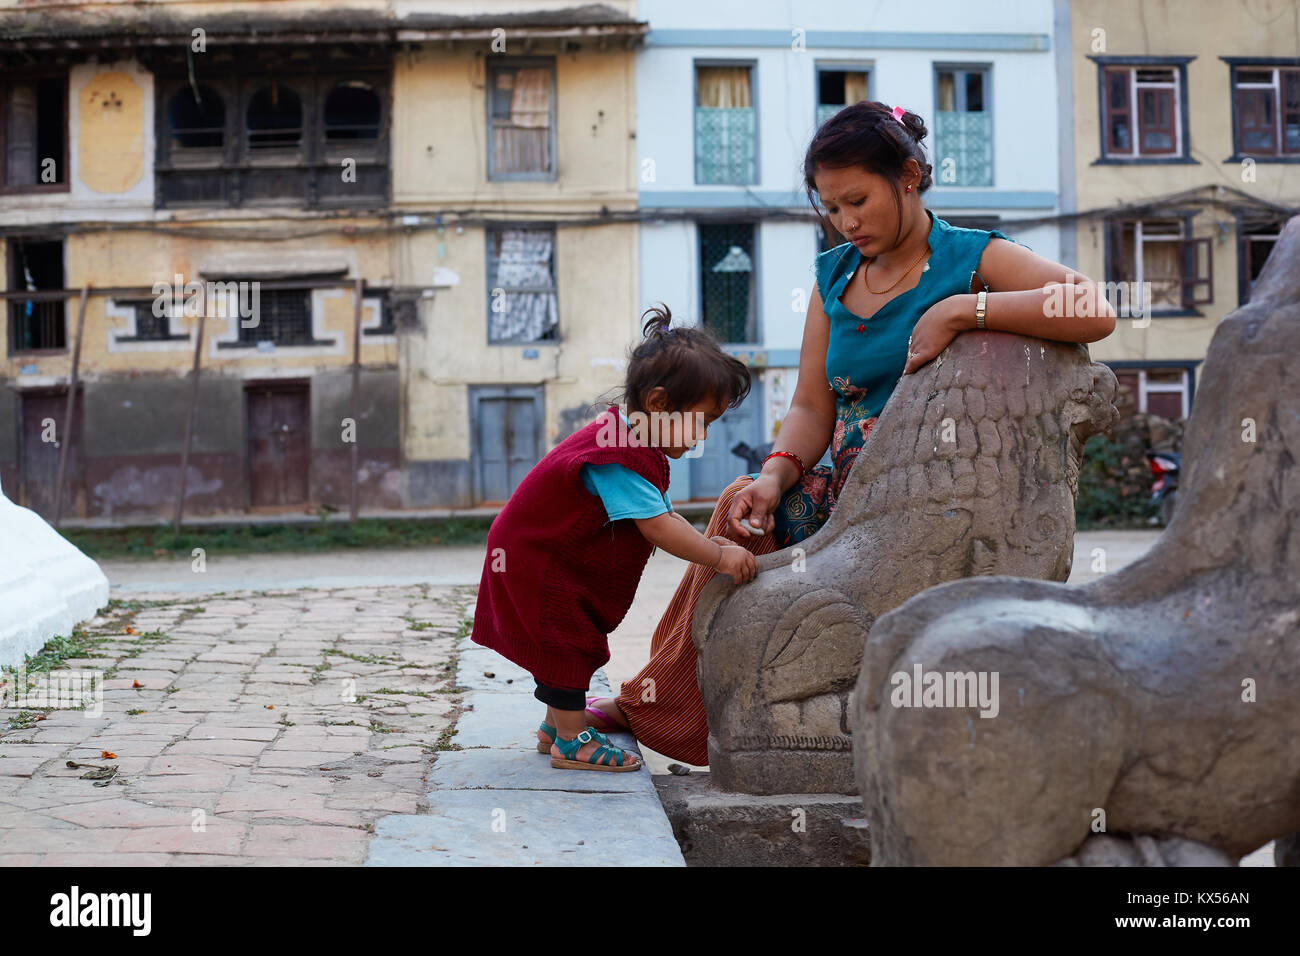 Nepali woman and baby playing with lion statue, Kathmandu, Nepal - Stock Image